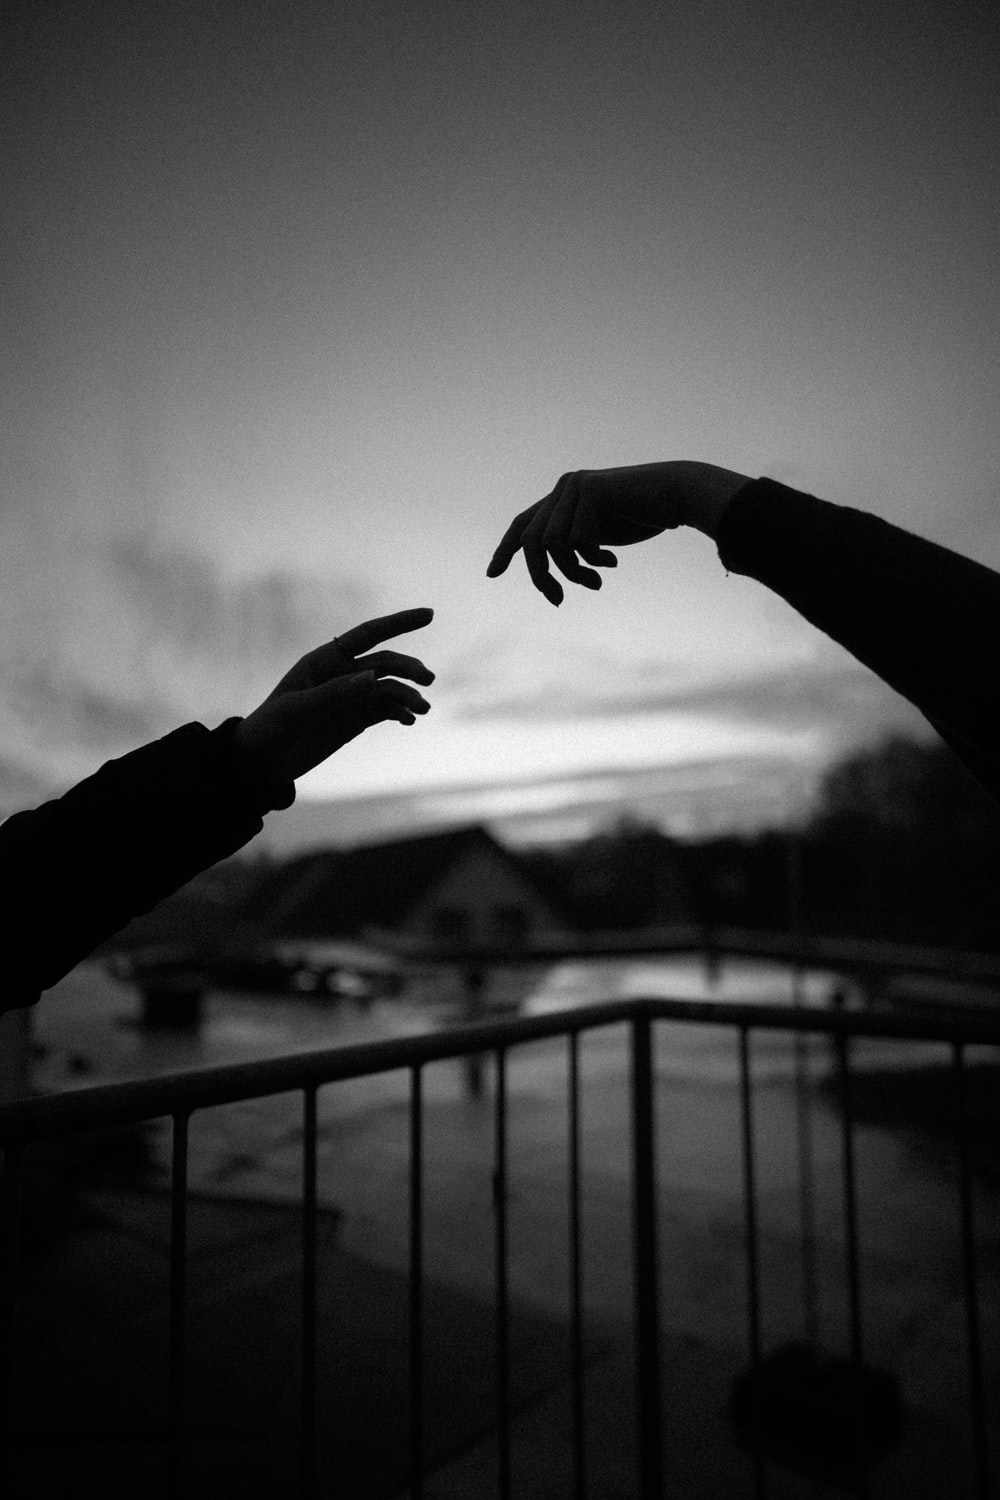 grayscale photo of hands